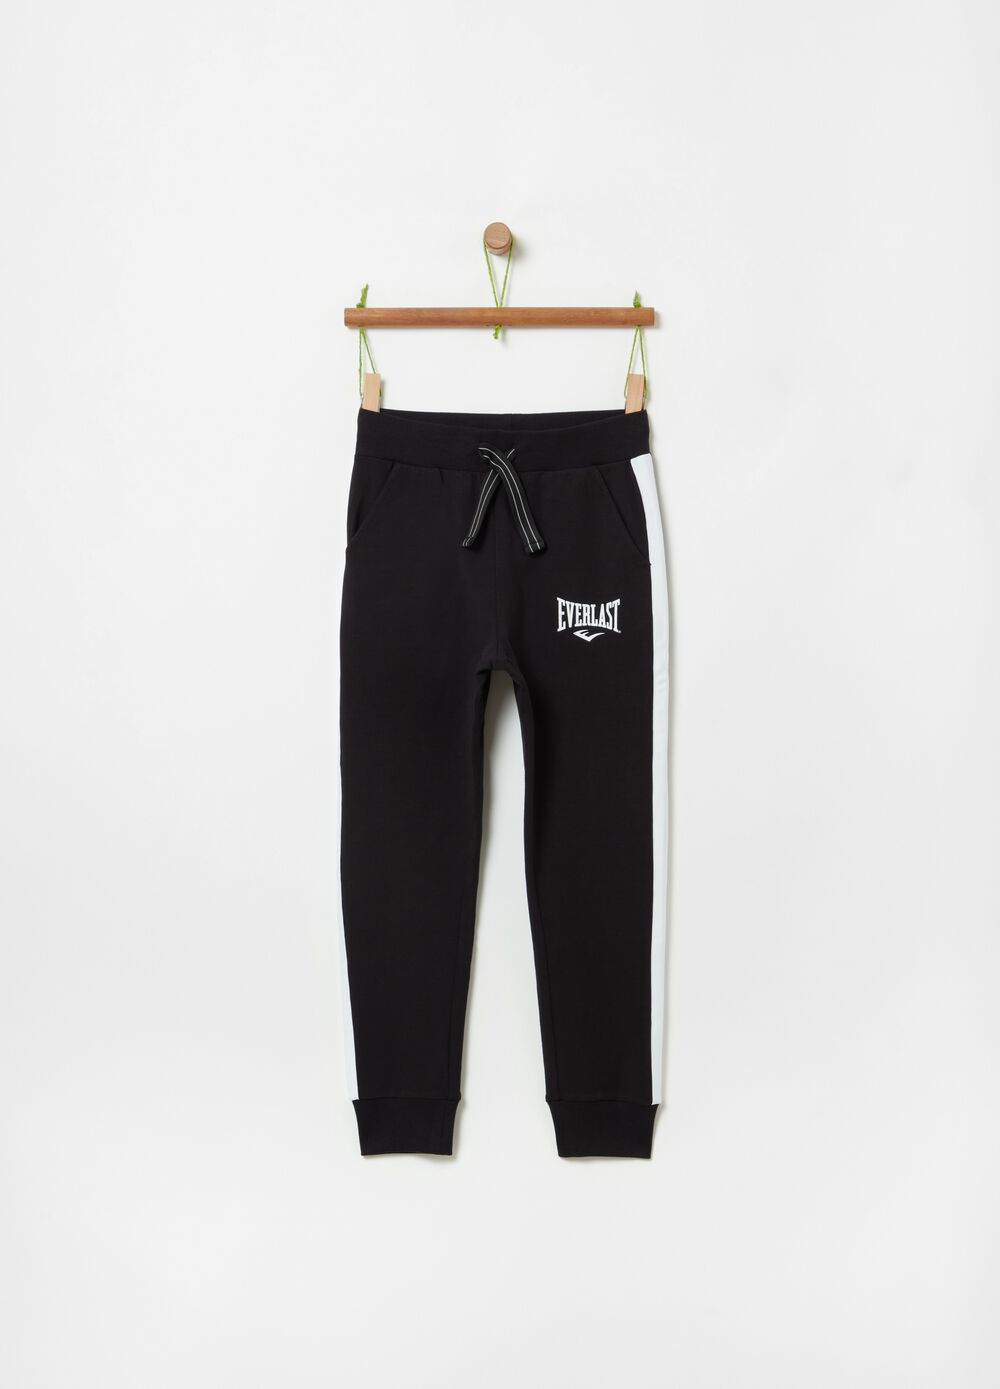 Everlast stretch cotton joggers